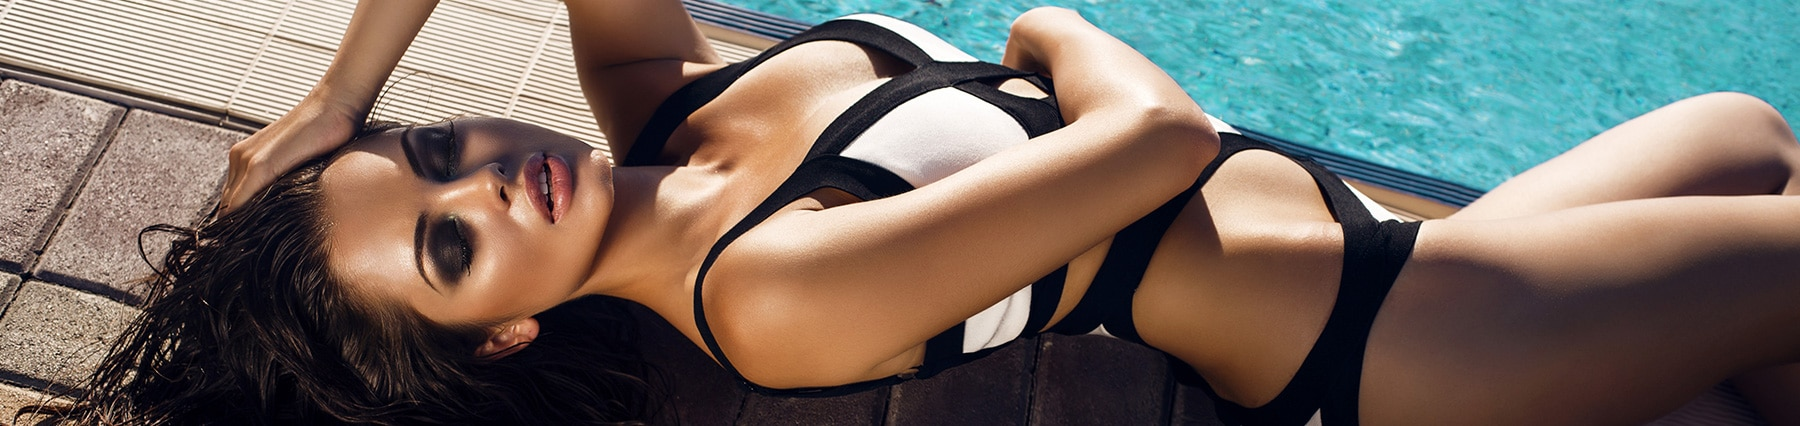 Sun Angel Special: 3 Sessions for the Price of 2! 19-21 January 2017 - The Tanning Shop